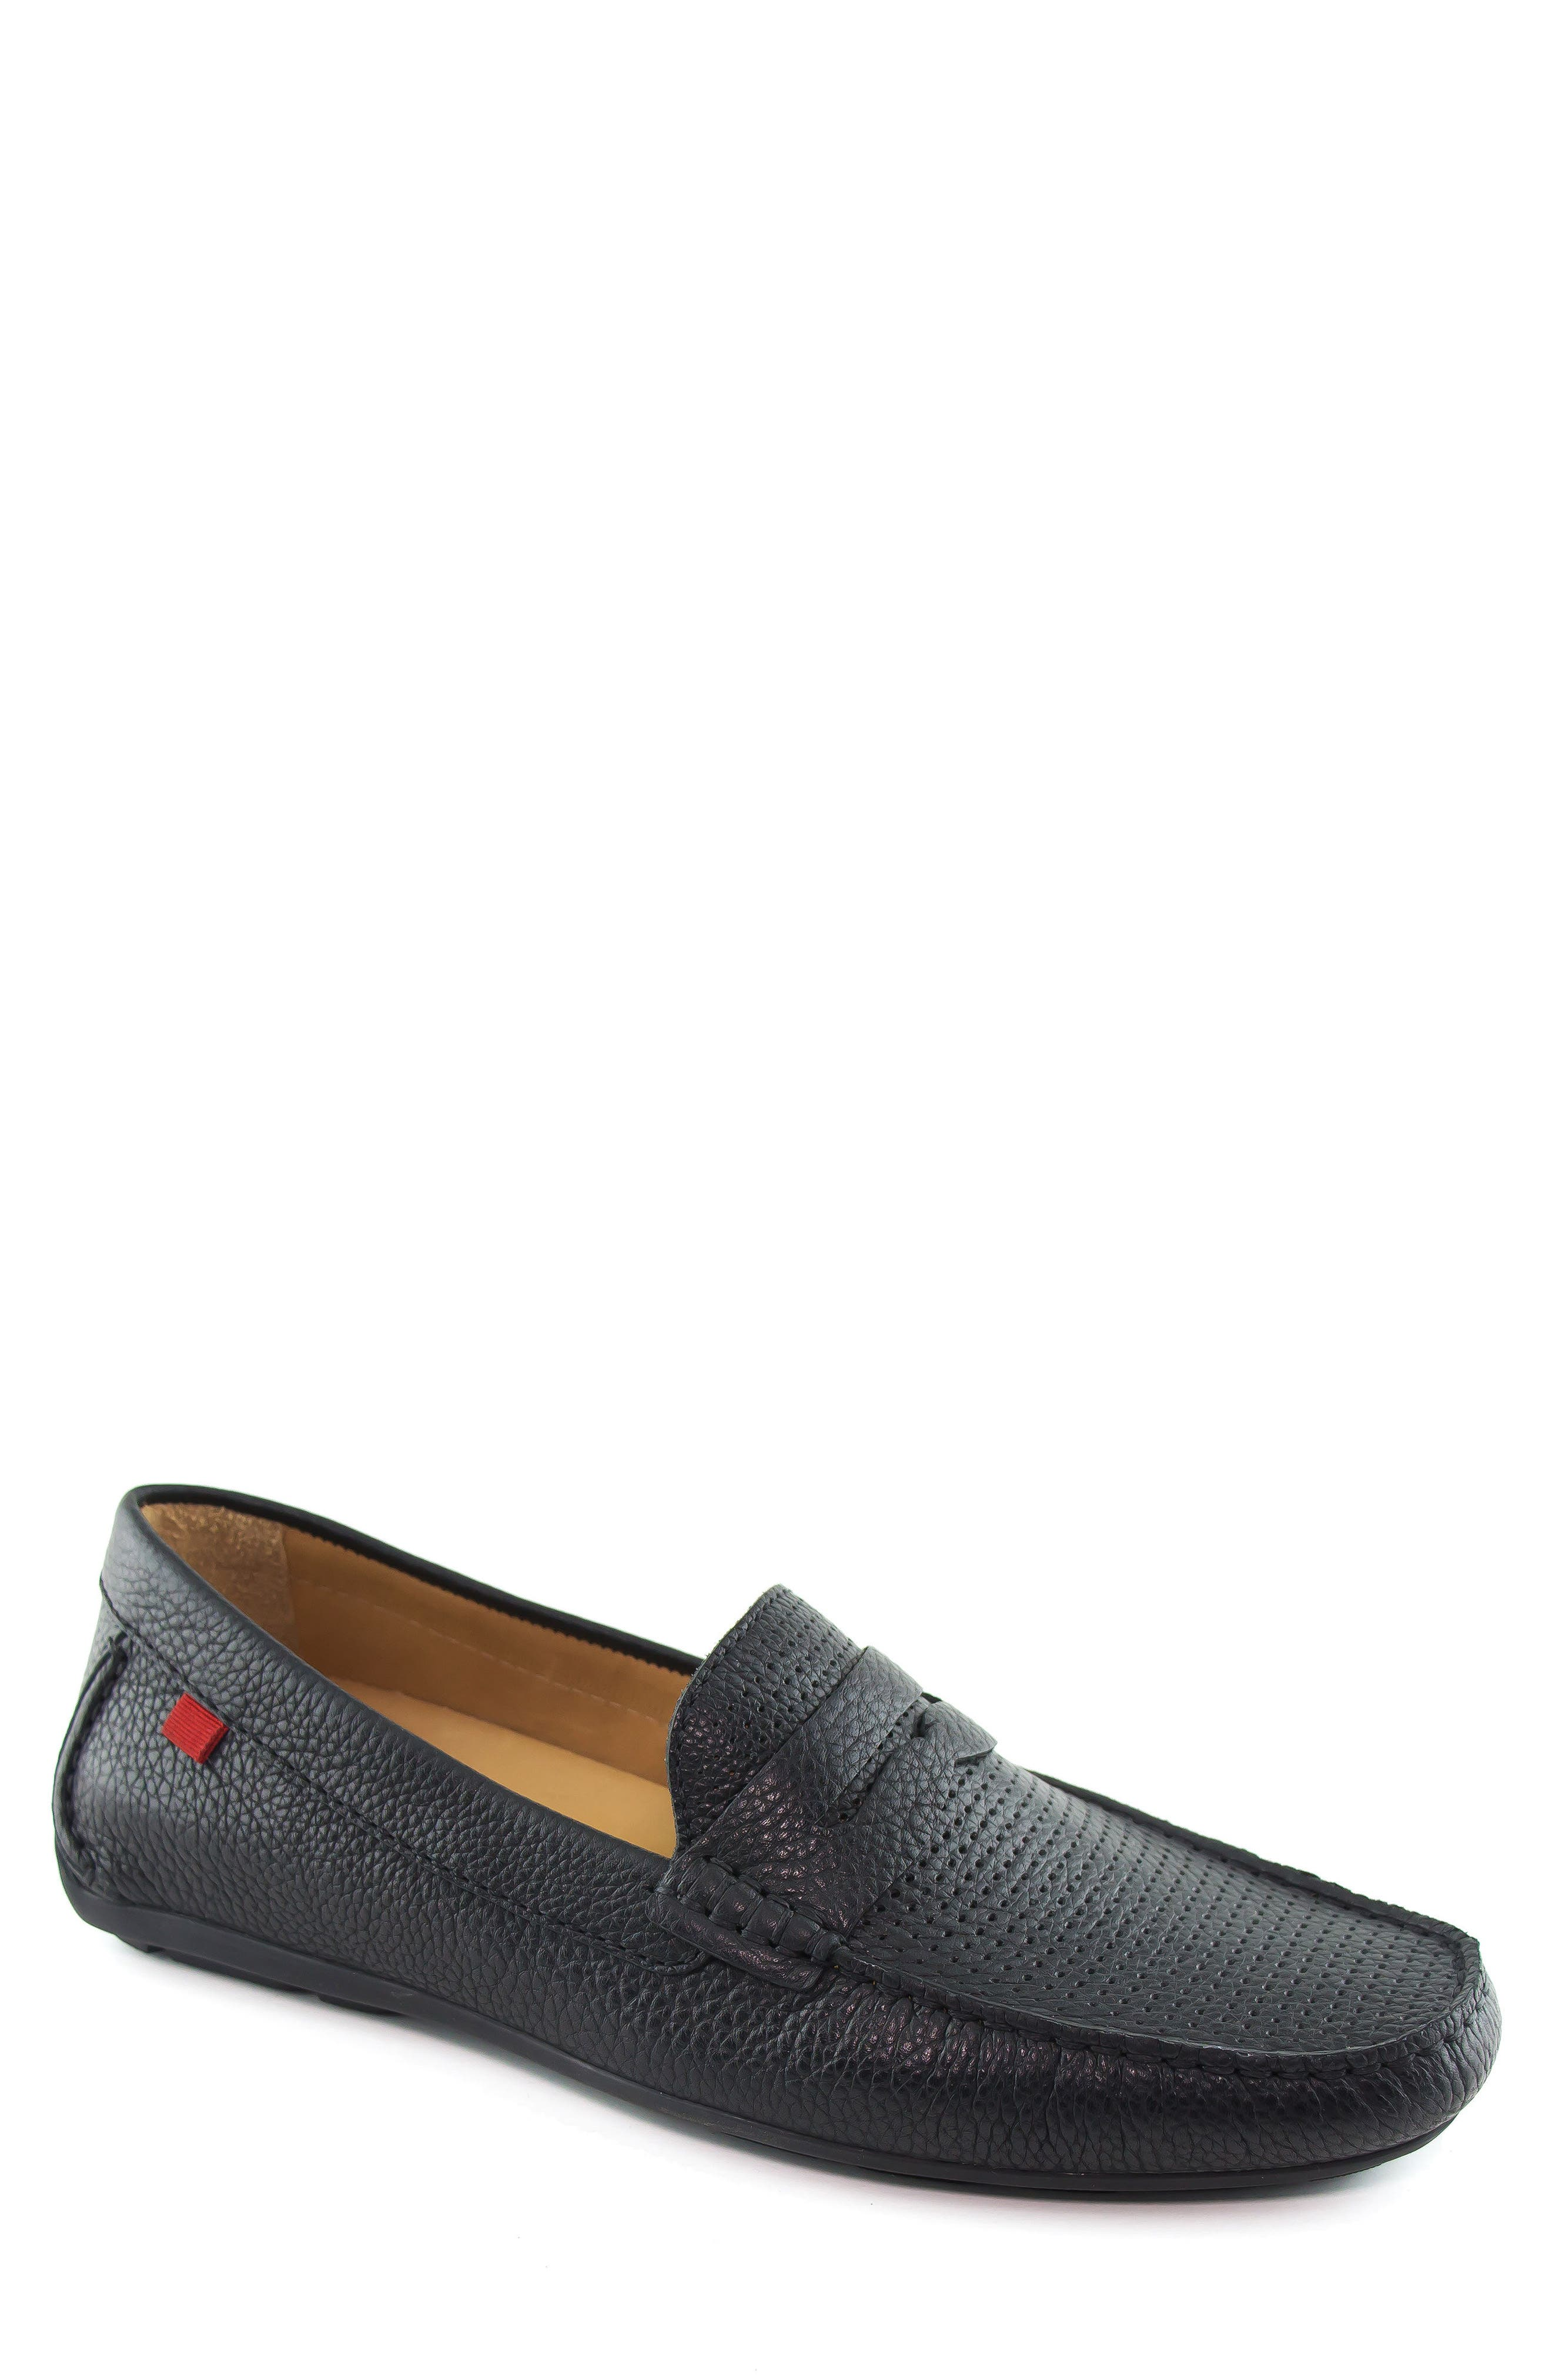 Marc Joseph New York Union Street Driving Shoe (Men)